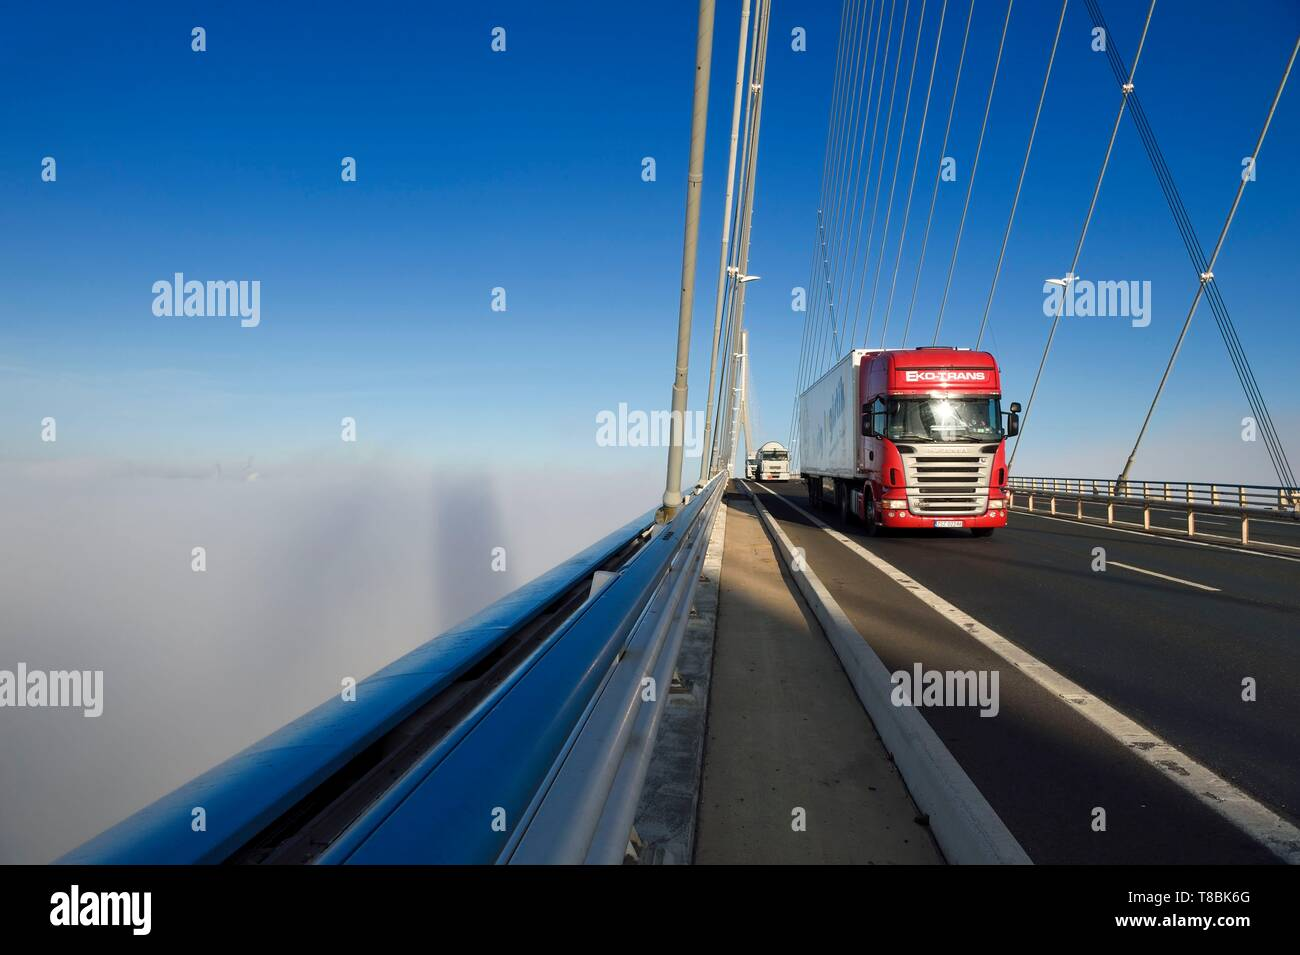 France, between Calvados and Seine Maritime, the Pont de Normandie (Normandy Bridge) spans the Seine in the Fog - Stock Image